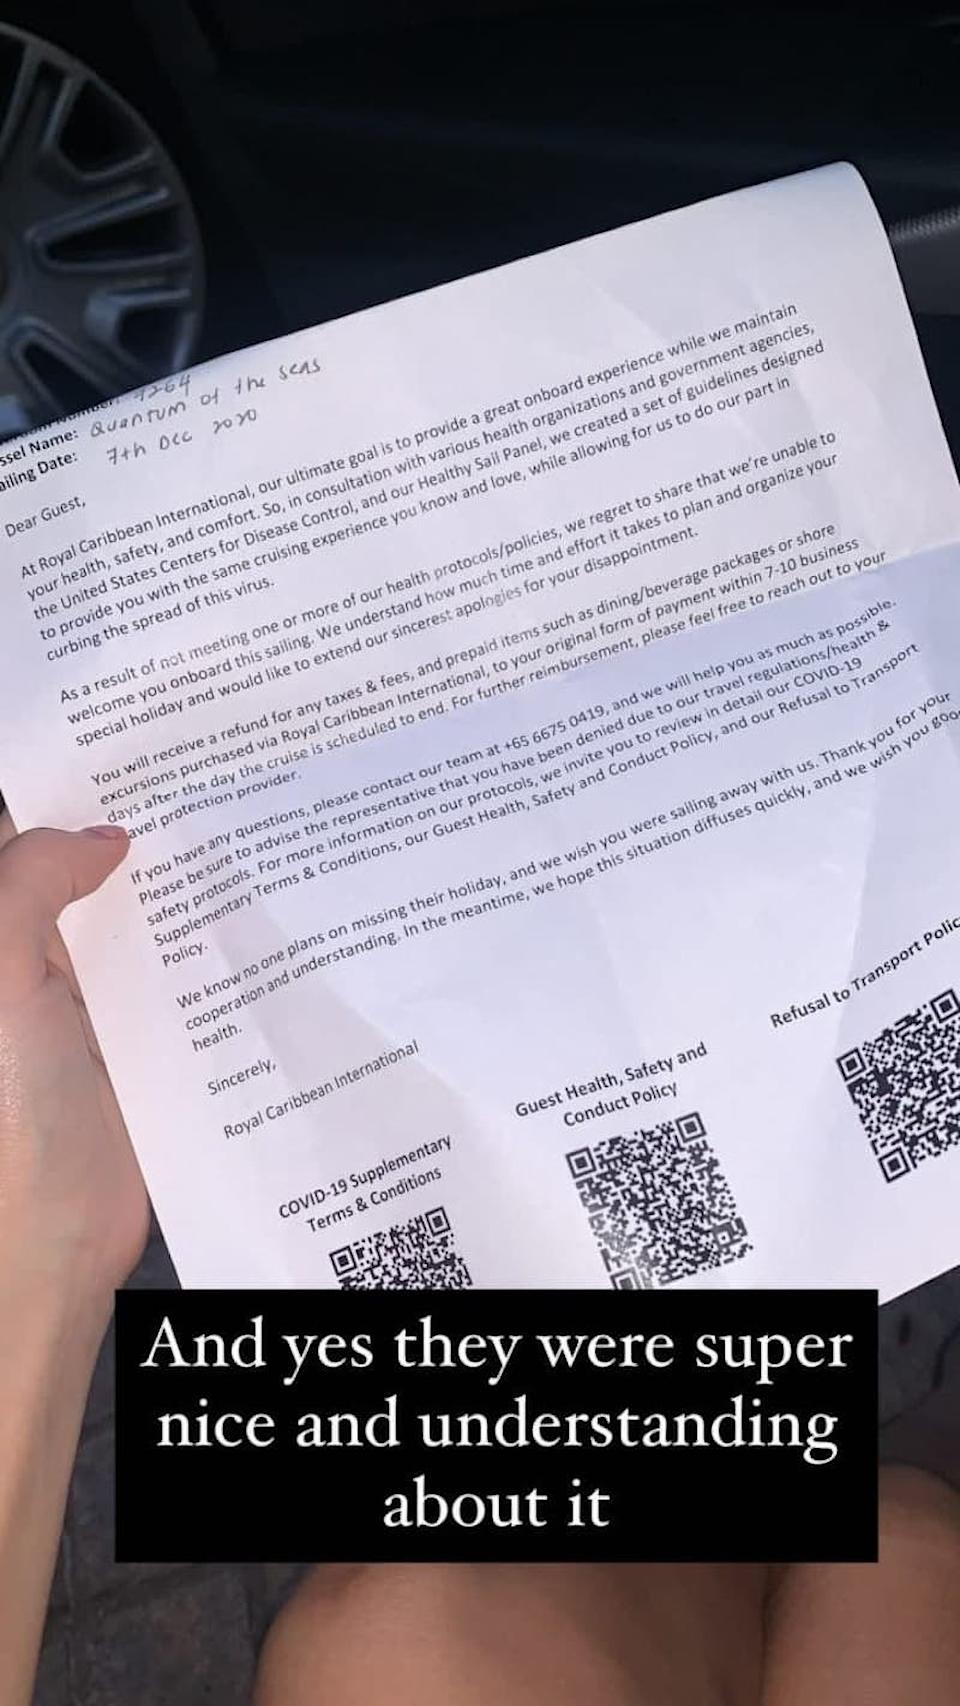 Jade Rasif shared a photo of the letter she received from Royal Caribbean with the caption: 'And yes they were super nice and understanding about it.'